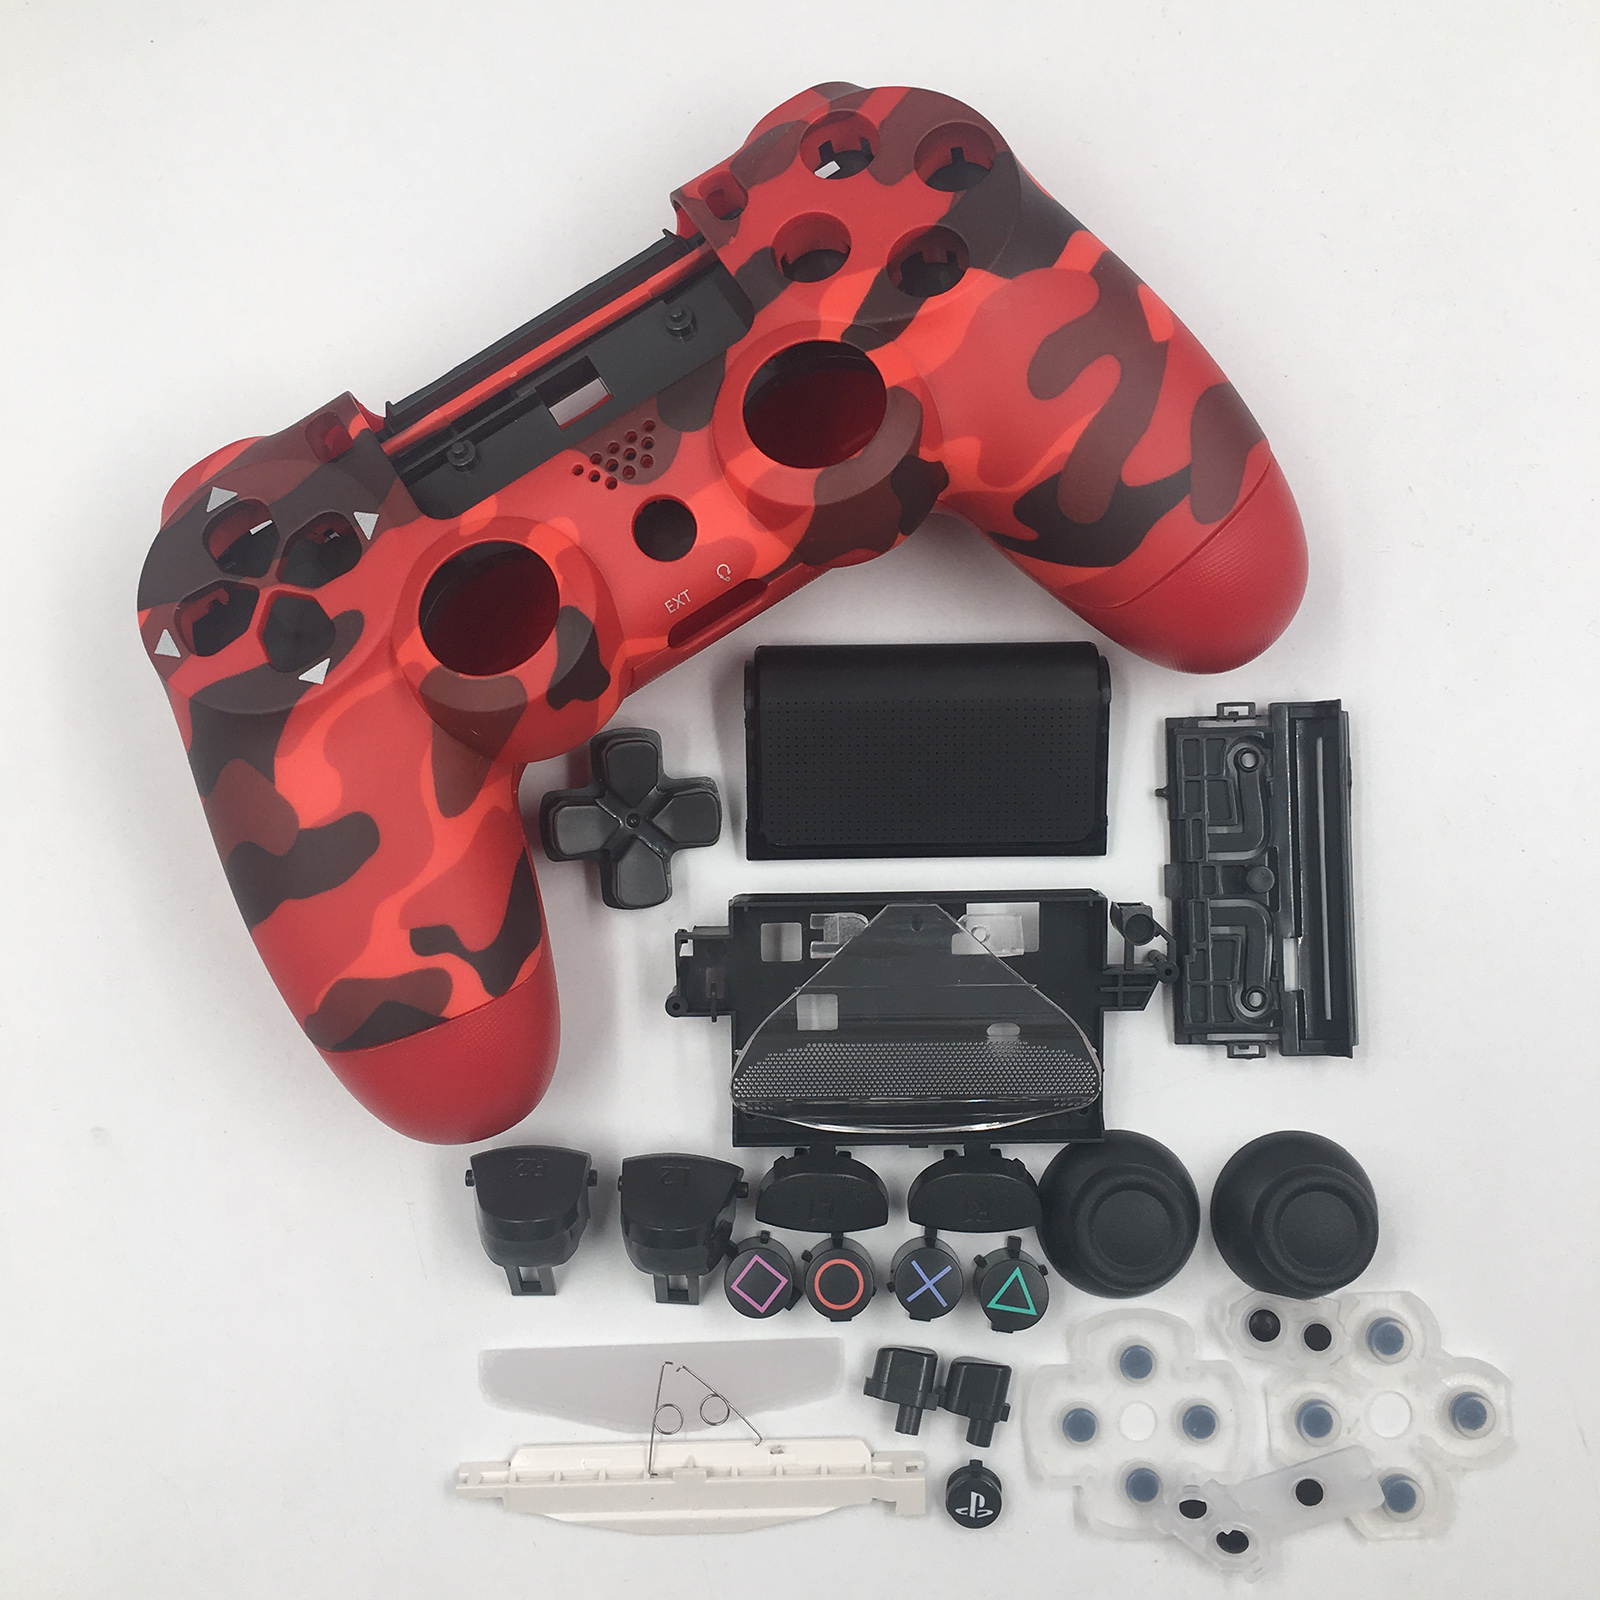 Replacement Housing Shell <font><b>Case</b></font> Buttons Set DIY <font><b>Mod</b></font> Kit for Sony Playstation <font><b>PS4</b></font> Slim 4 Controller Spare Parts image